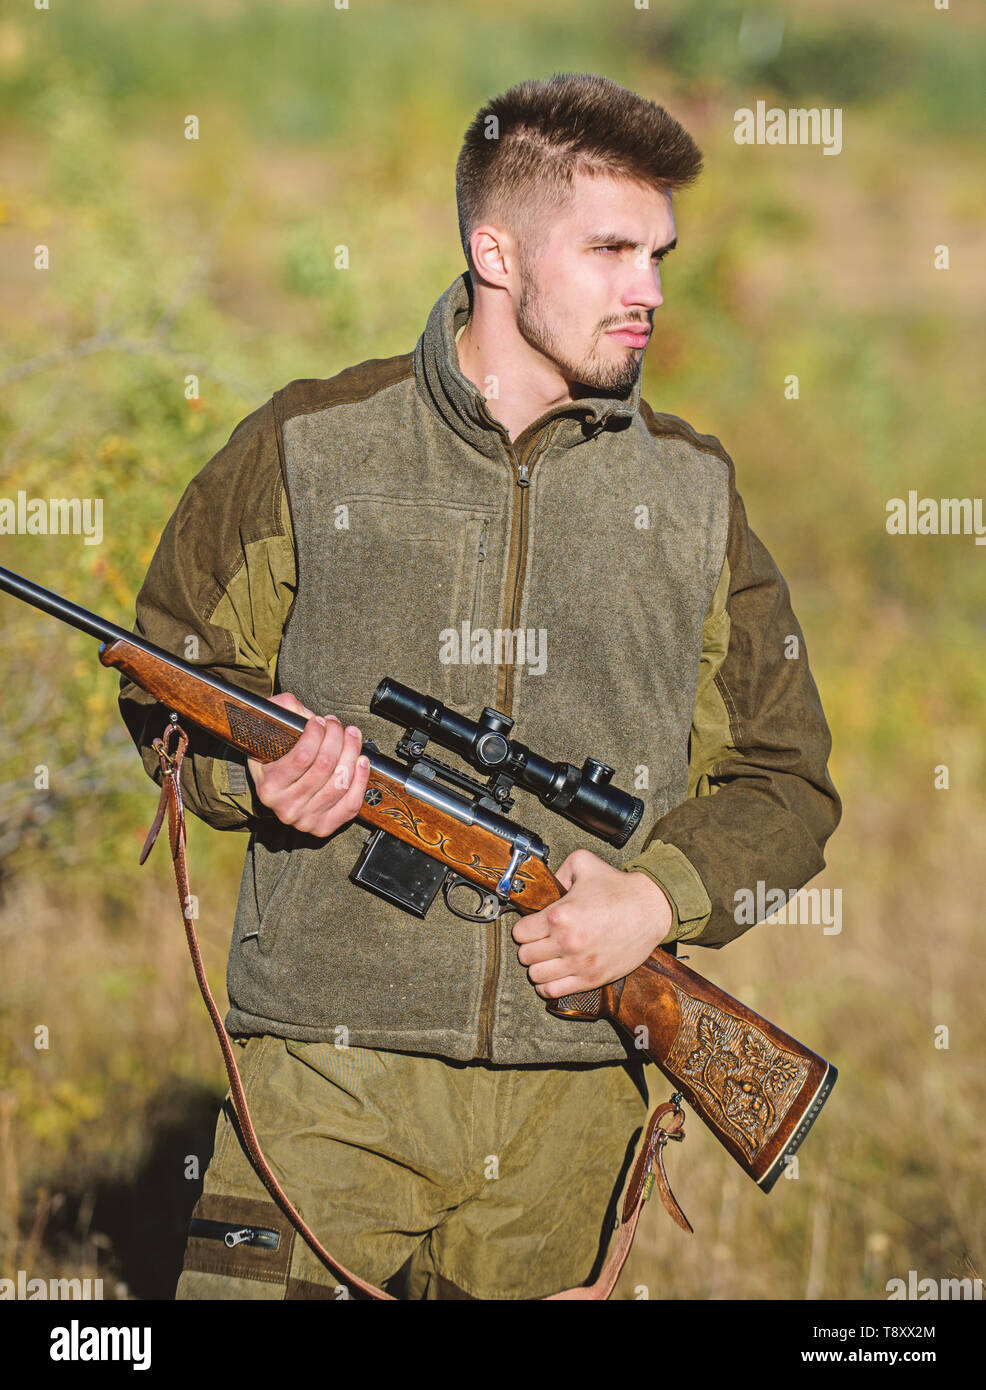 Hunting and trapping seasons. Bearded serious hunter spend leisure hunting. Man brutal unshaved gamekeeper nature background. Hunting permit. Hunter hold rifle. Hunting is brutal masculine hobby. - Stock Image